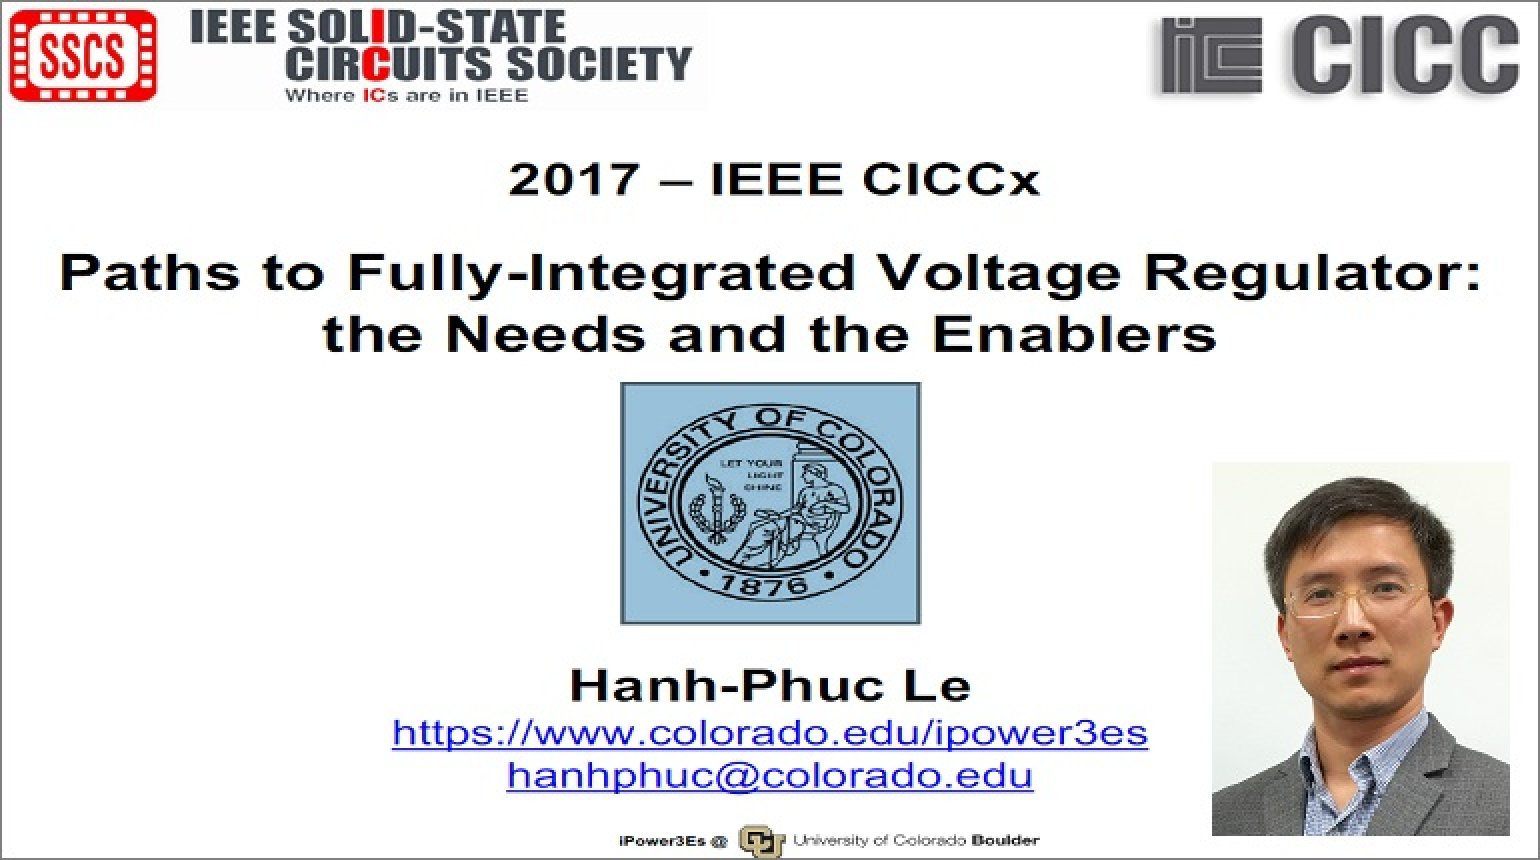 Paths to Fully-Integrated Voltage Regulator: the Needs and the Enablers Video